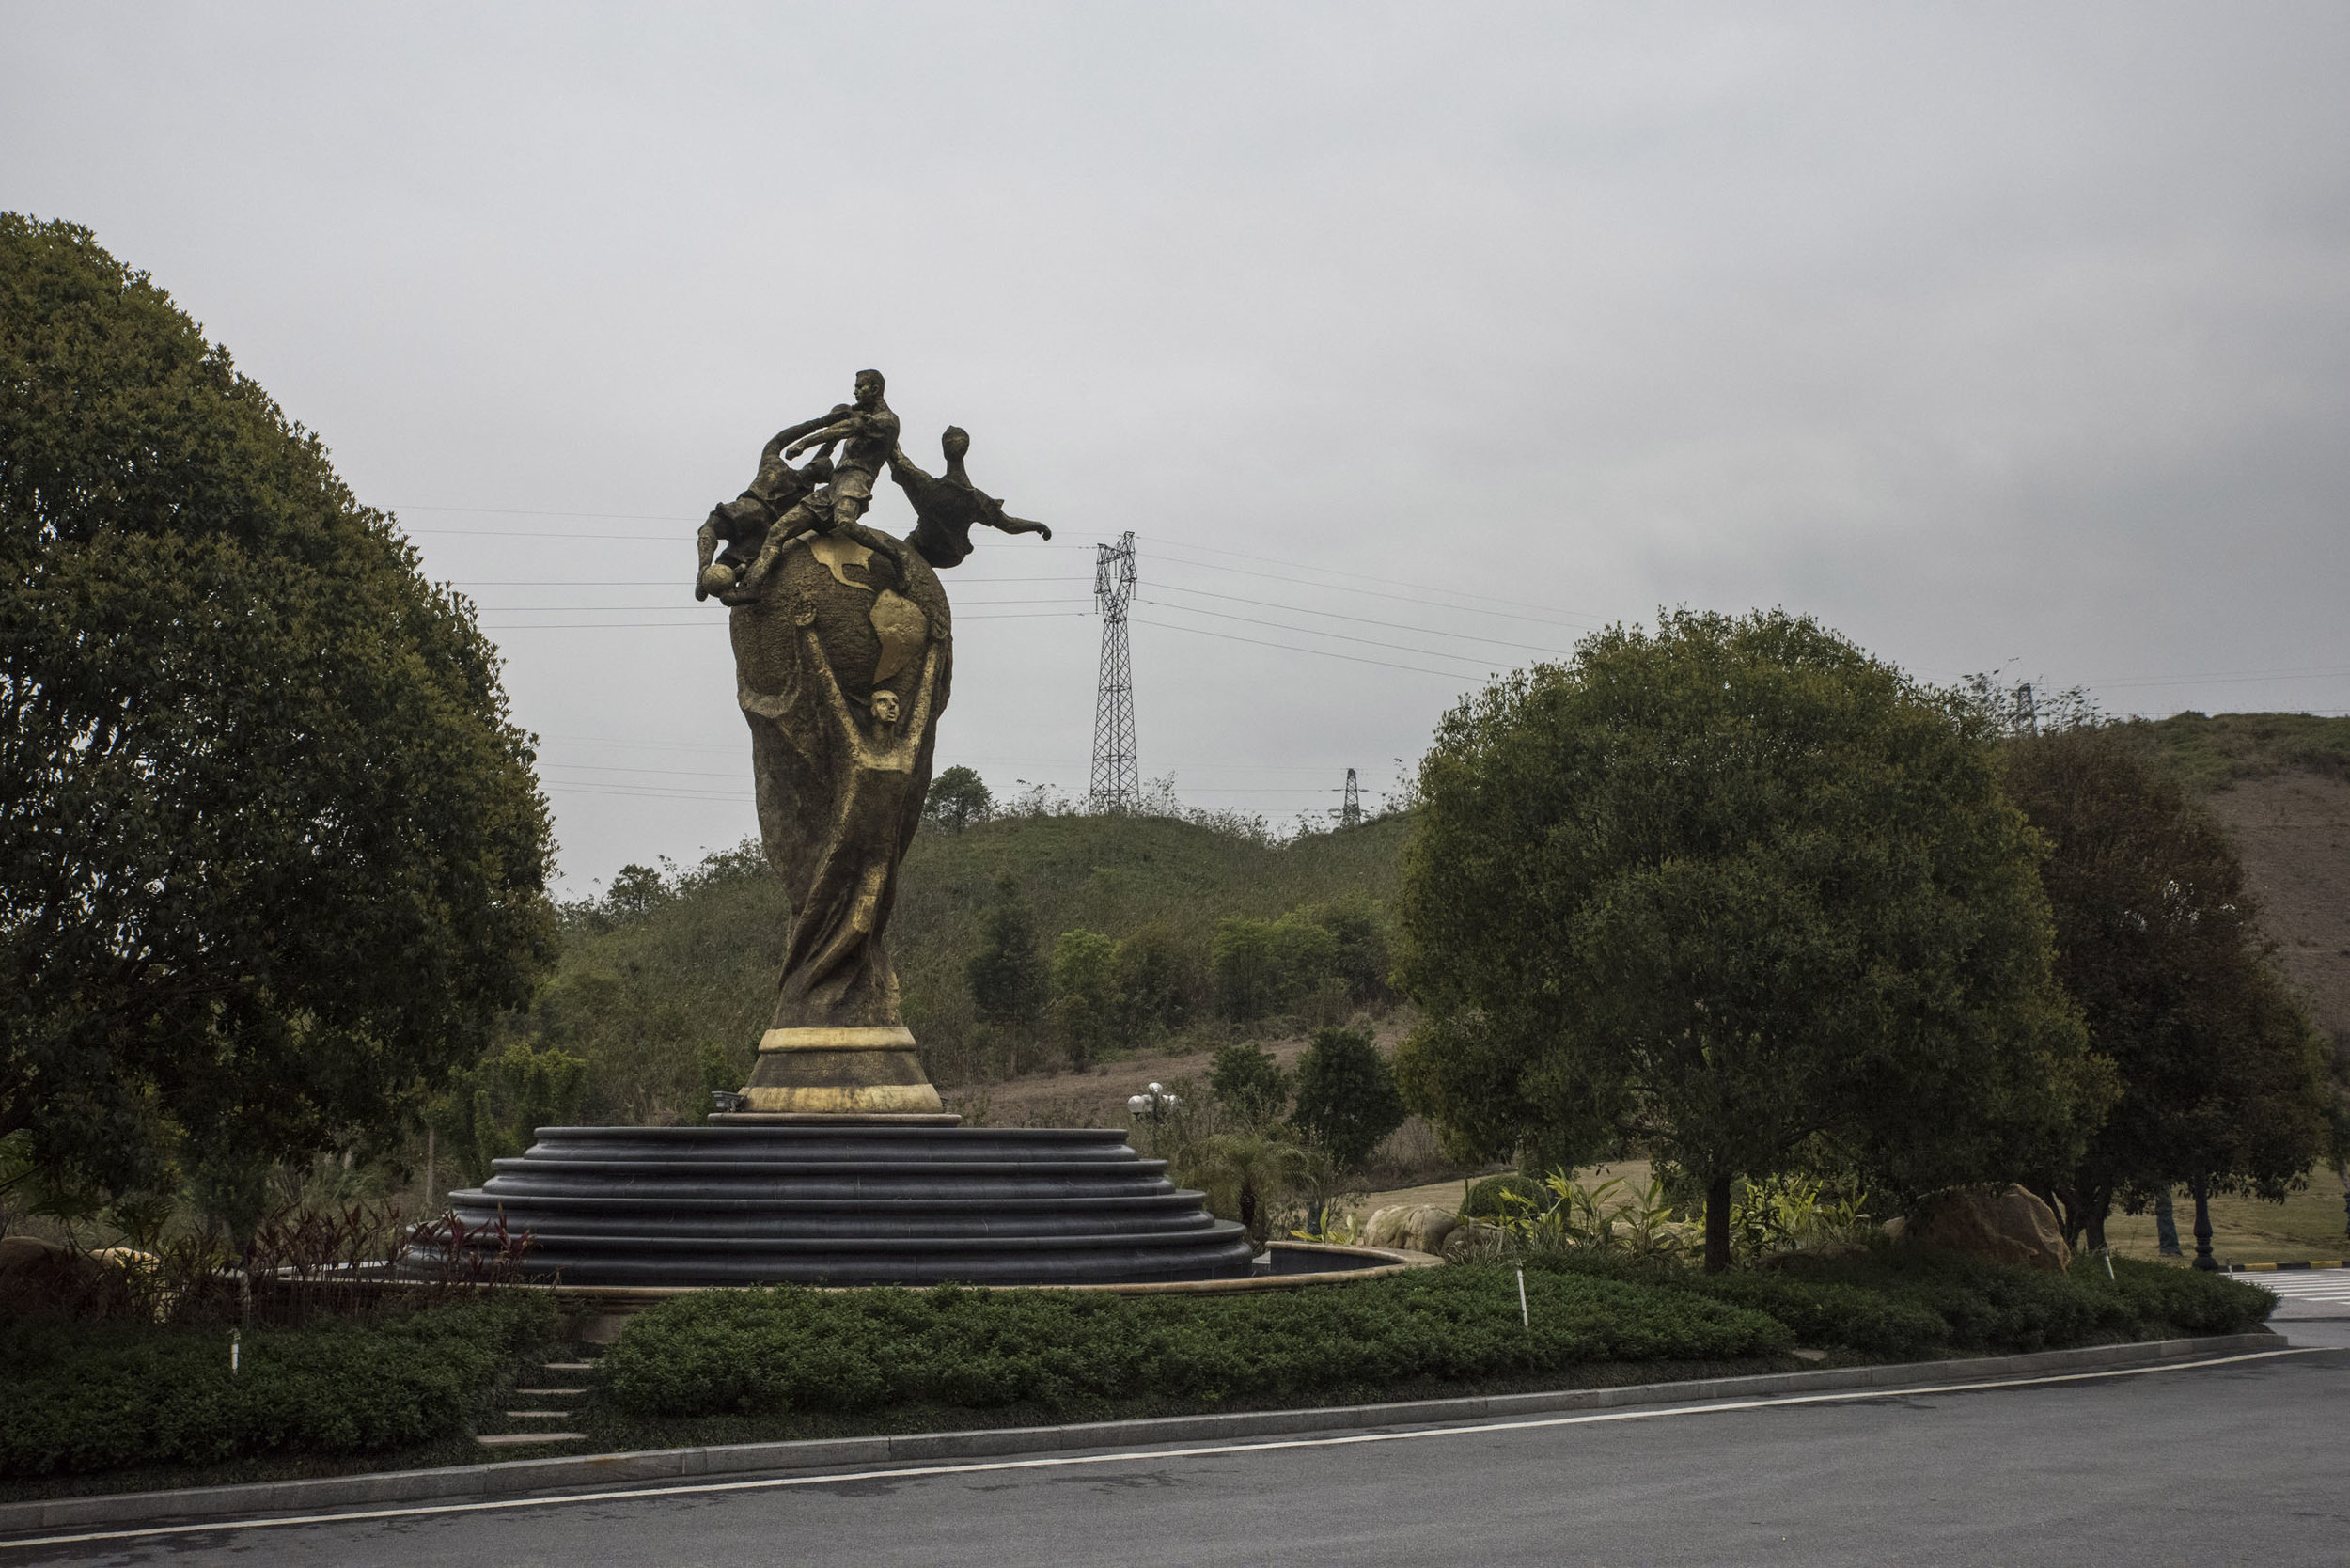 A giant model of the World Cup trophy outside the Evergrande Football school in Guangdong.  The school, the biggest in the world with hundreds of students and dozens of football fields has become a symbol of China's efforts to become a world class football nation.  Since this photo was taken the school had to remove the statue at the FIFA's request.